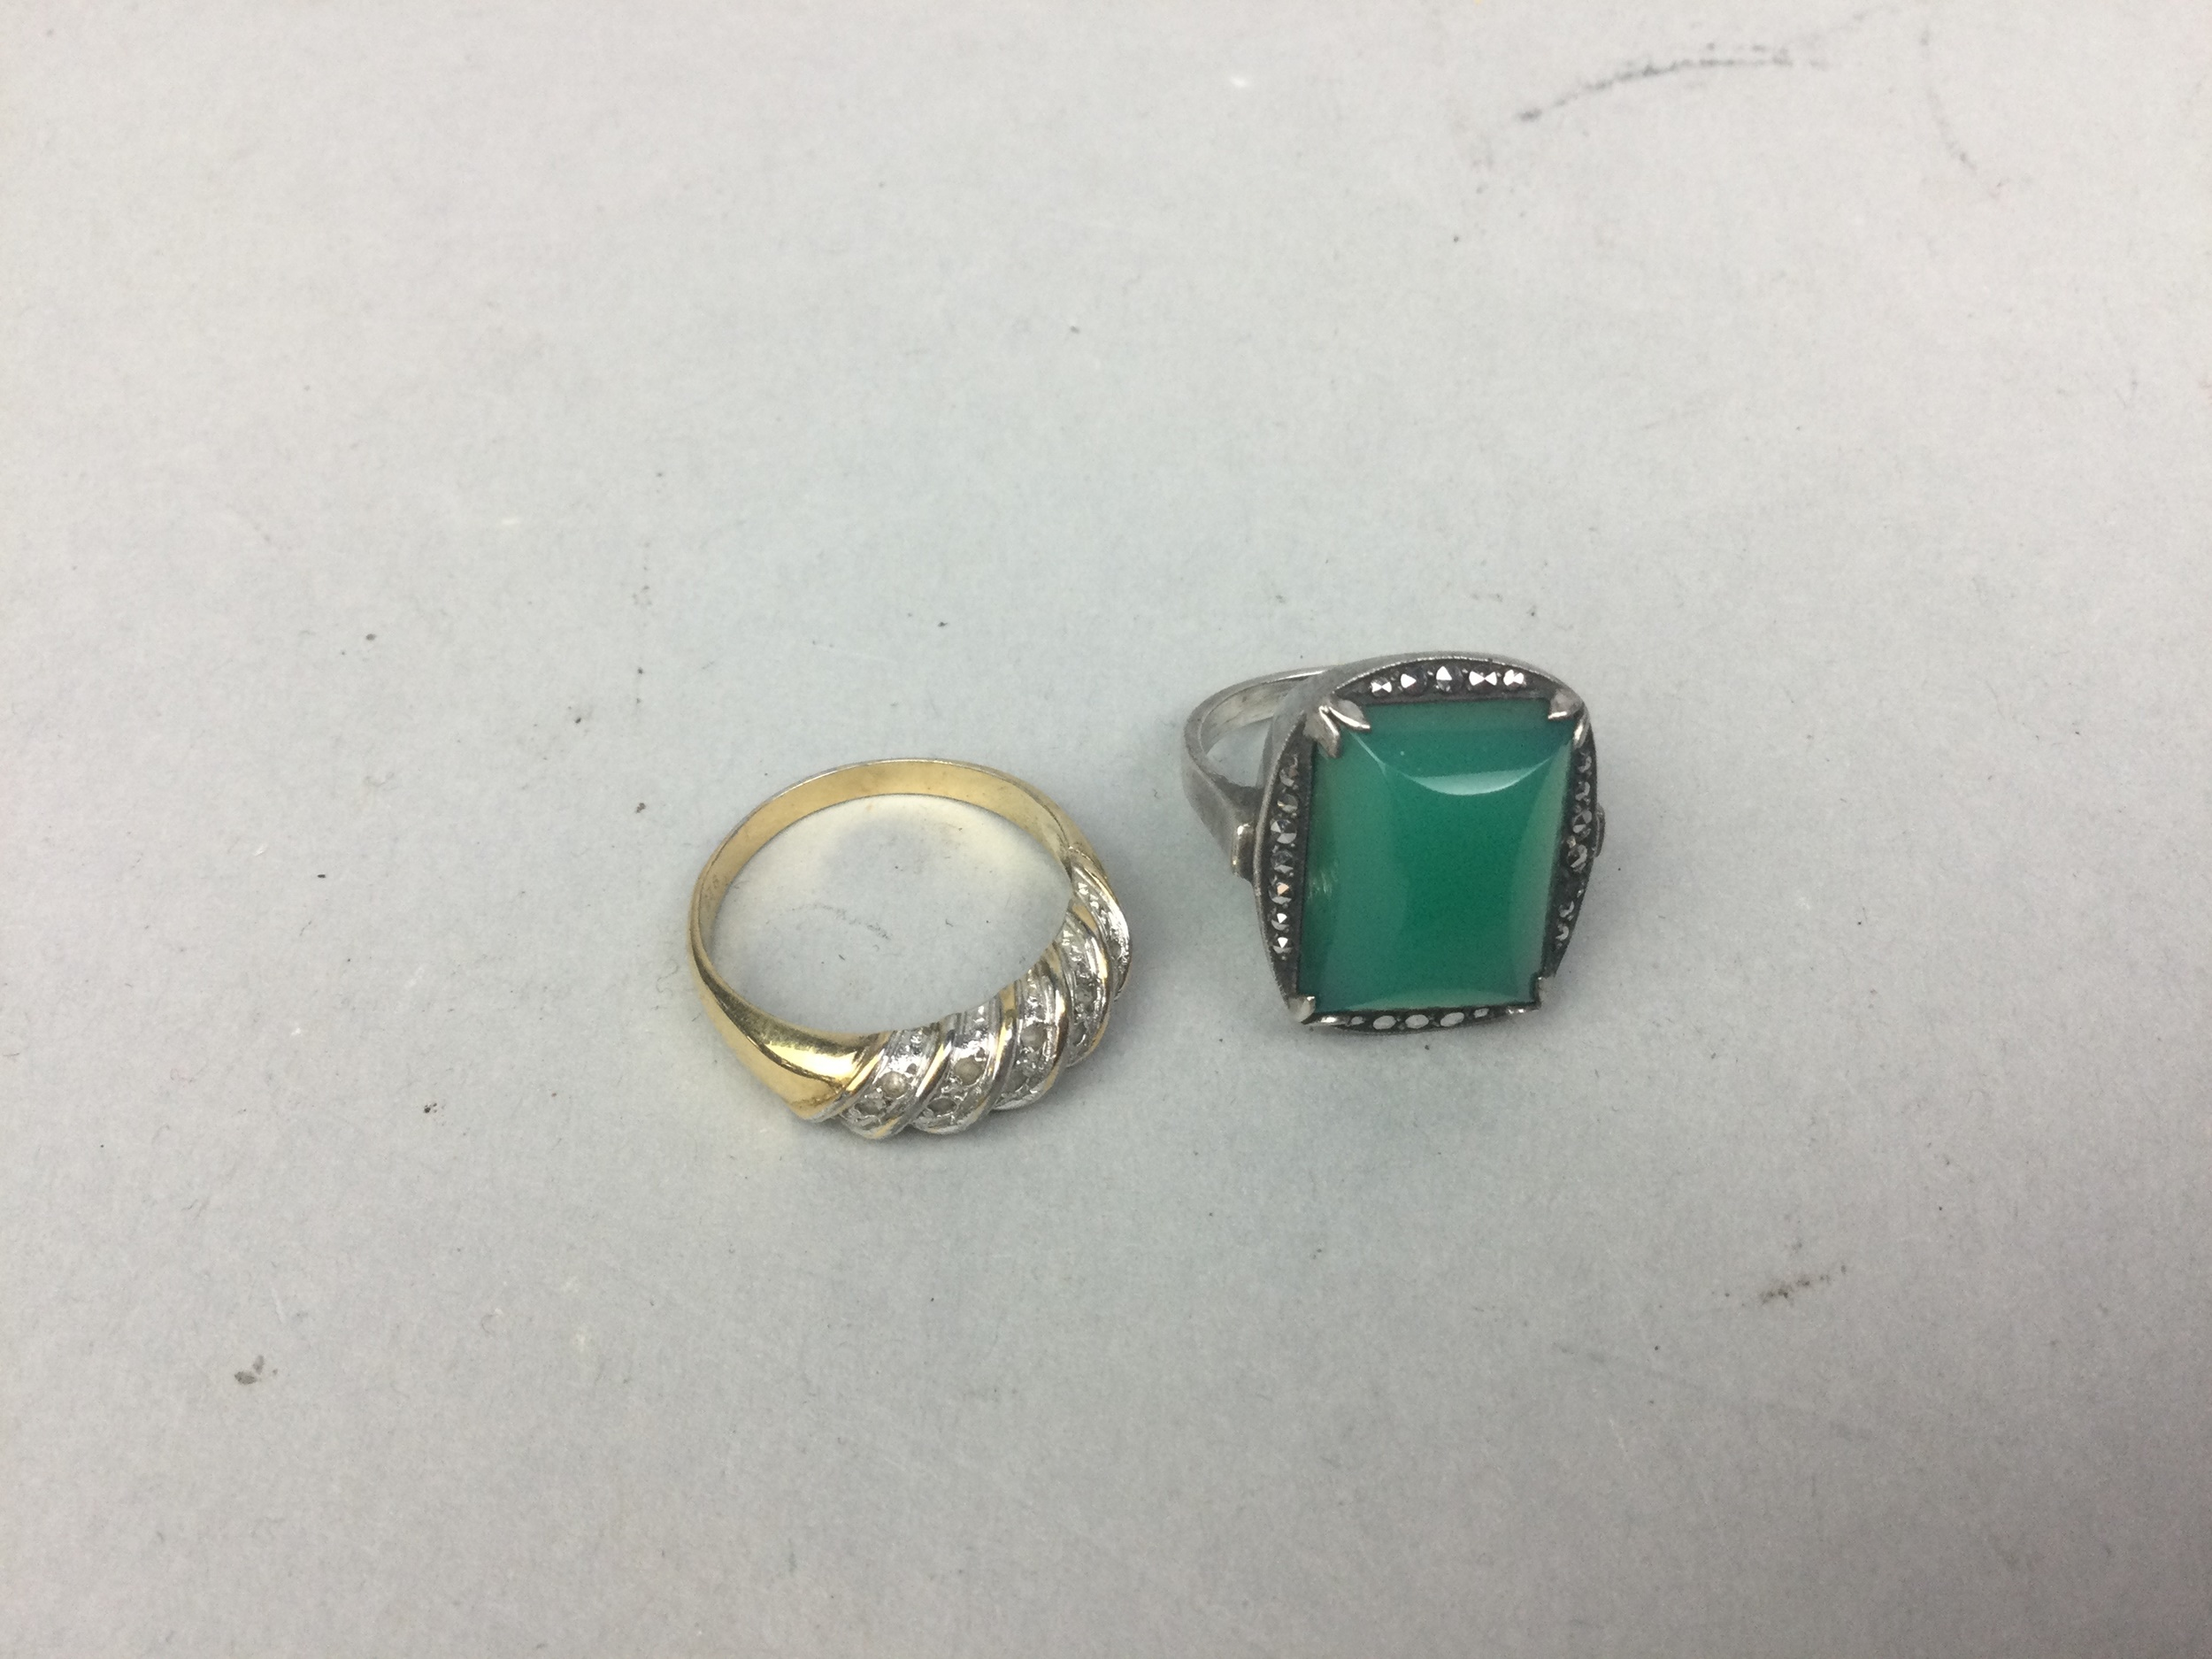 AN ART DECO STYLE RING AND A DRESS RING